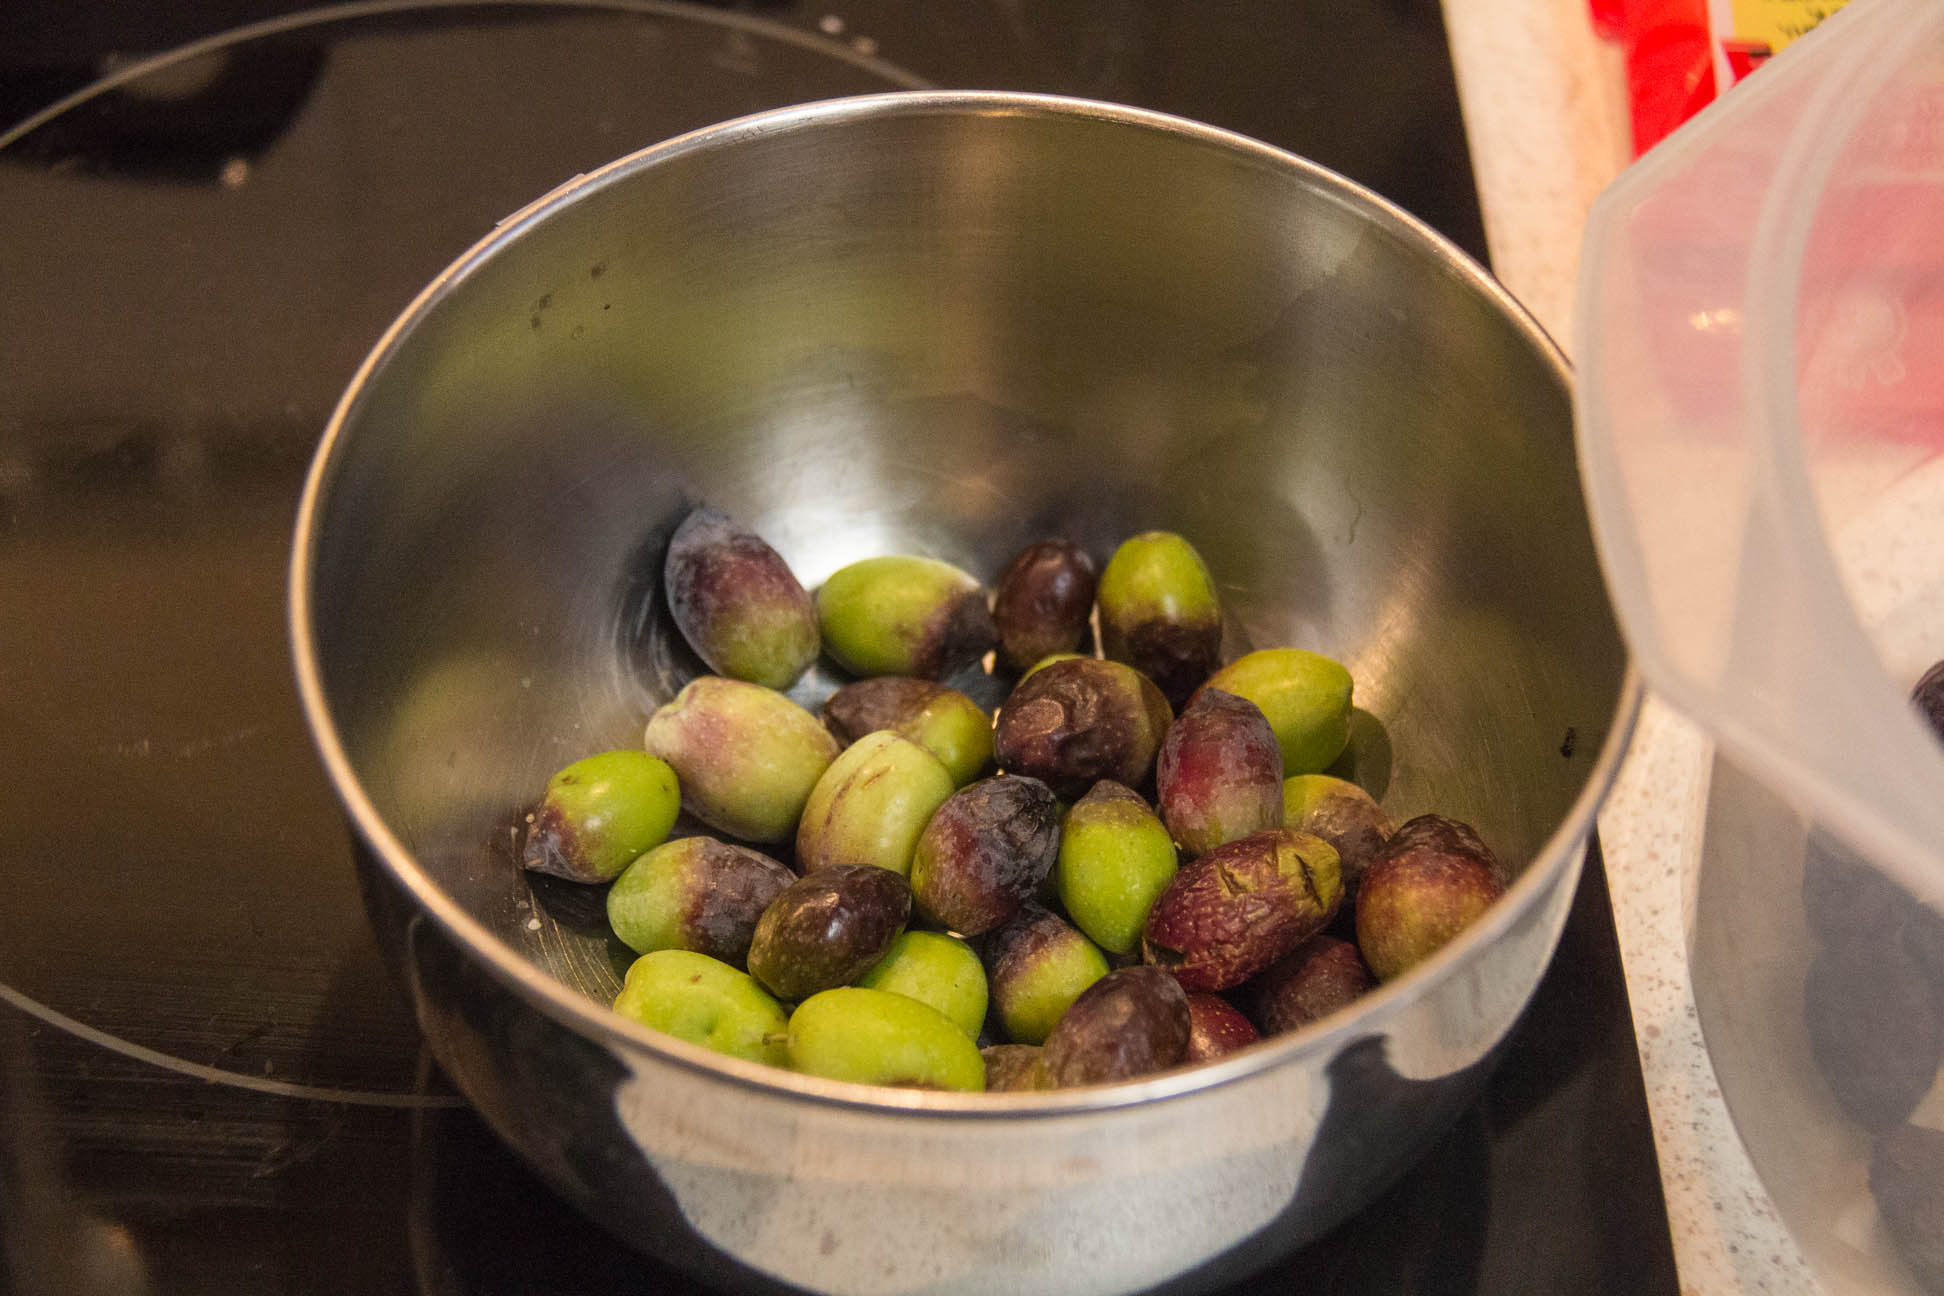 12/04/15 Day 1: Picking olives and separating them into different categories such as whole, green, shriveled and half eaten